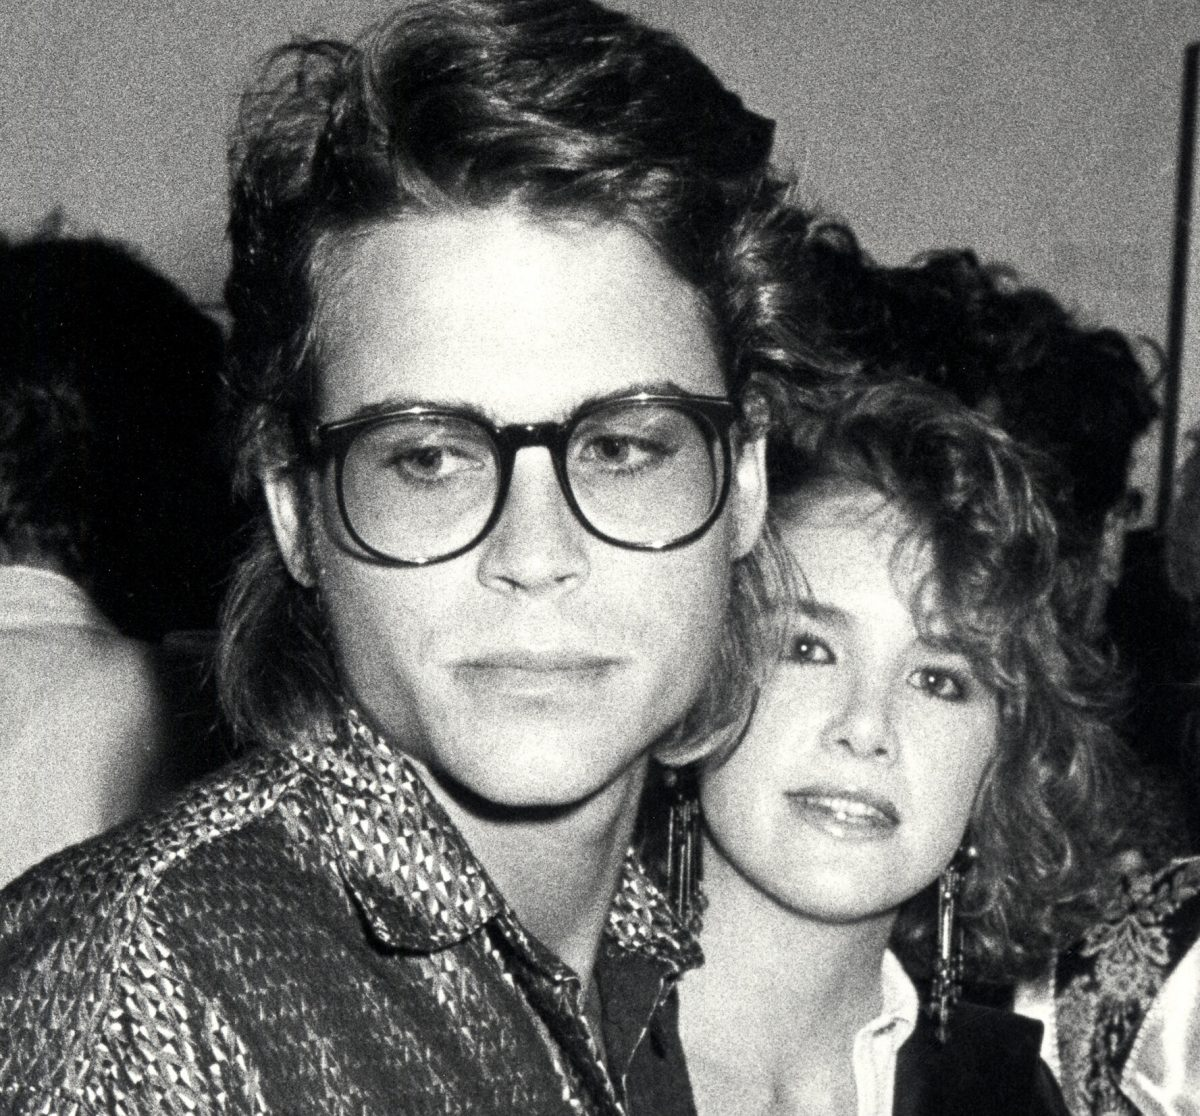 Rob Lowe and Melissa Gilbert at the opening exhibit for photographer Gregg Gorman